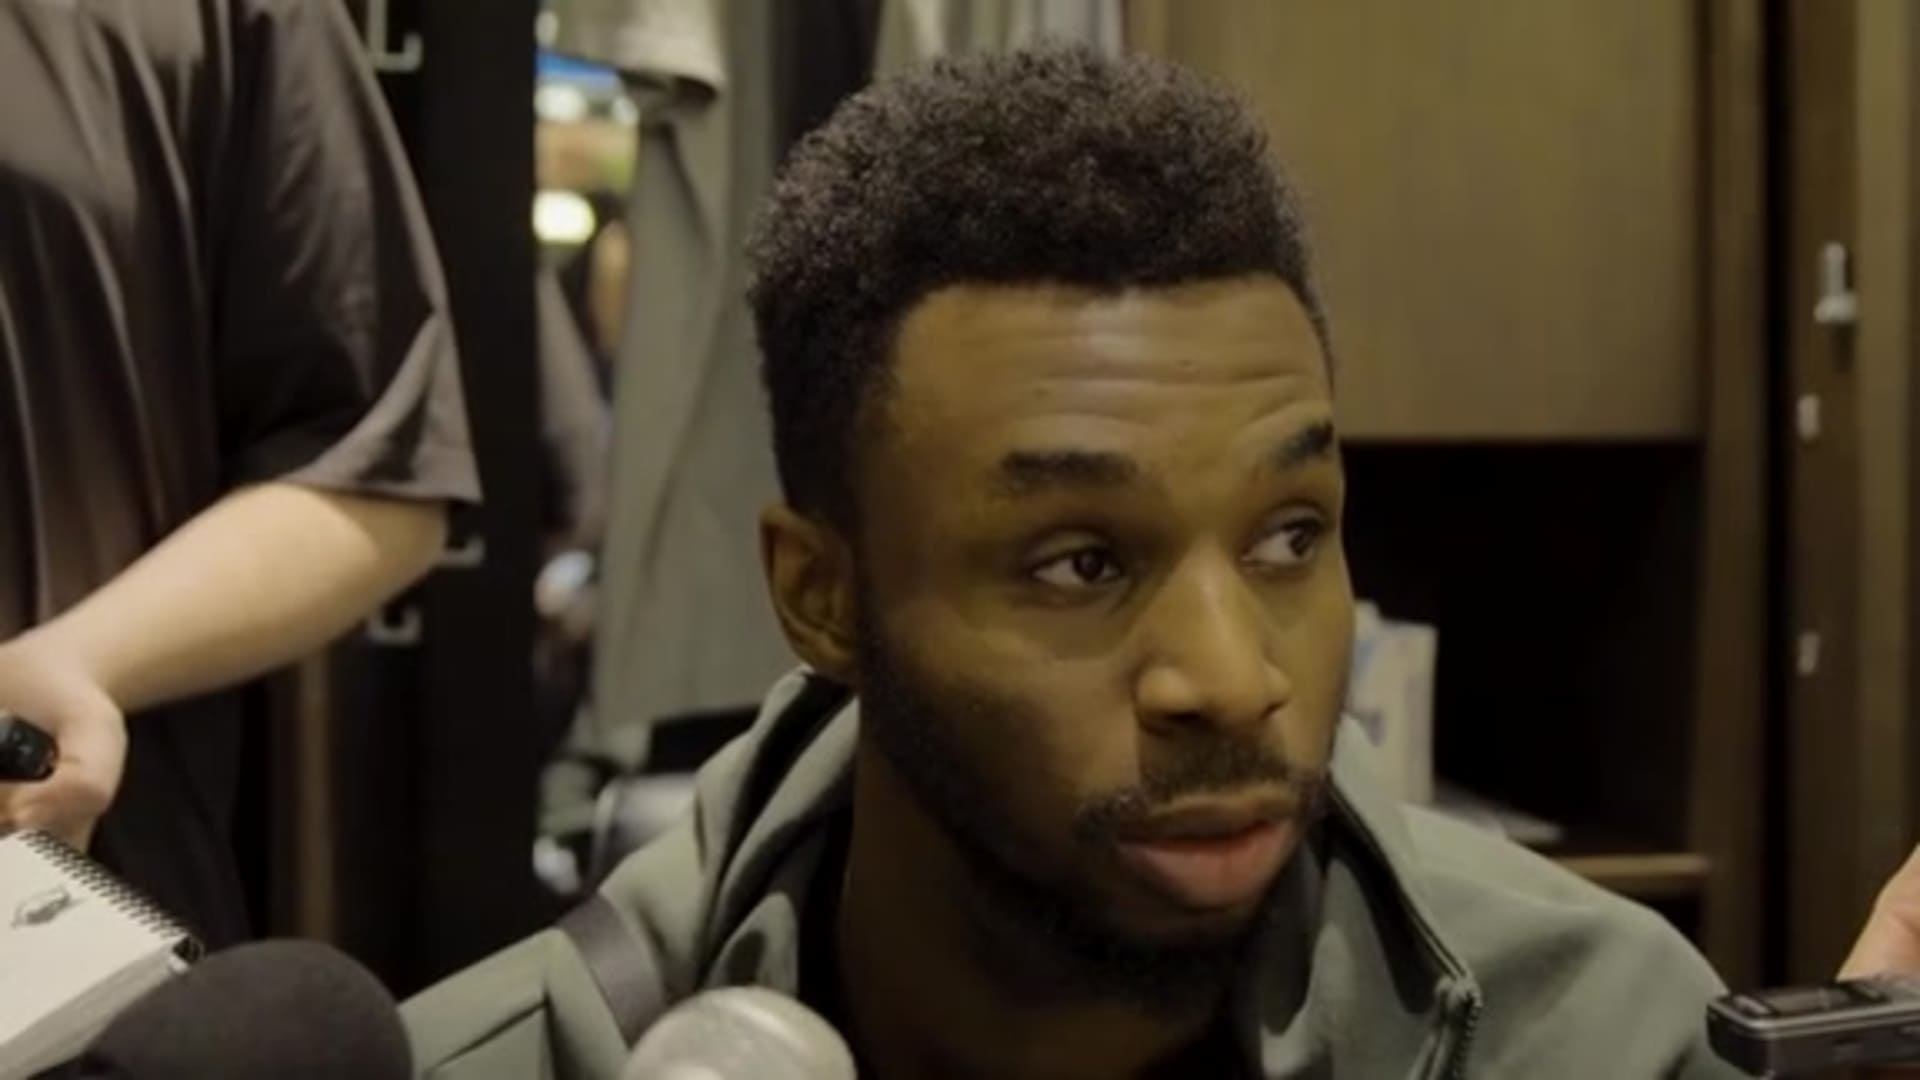 Andrew Wiggins After Loss To Thunder (1.13.20)